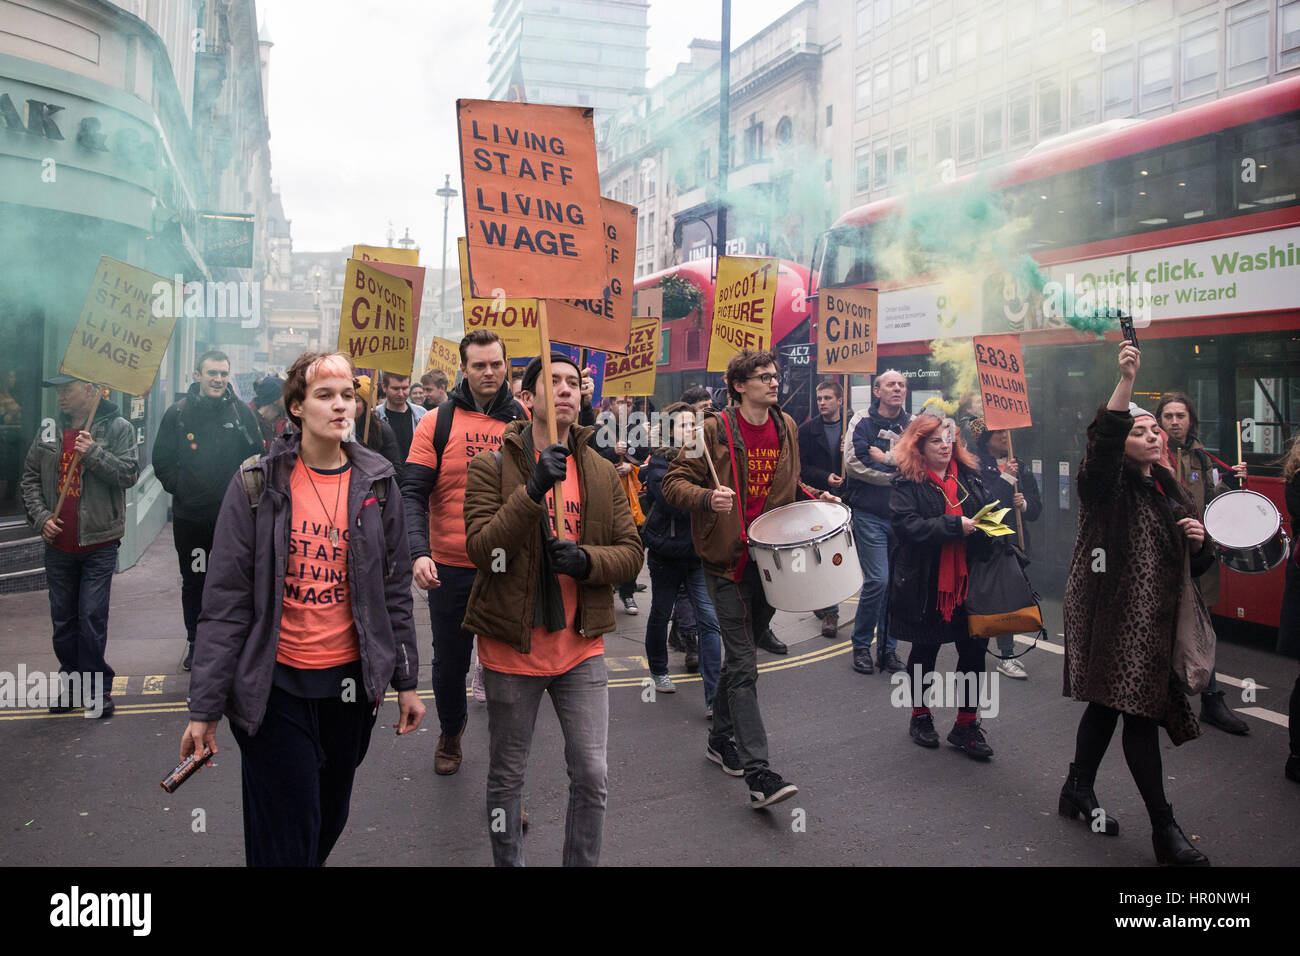 London, UK. 25th Feb, 2017. Picturehouse cinema workers march between Picturehouse cinemas to call on their owners - Stock Image